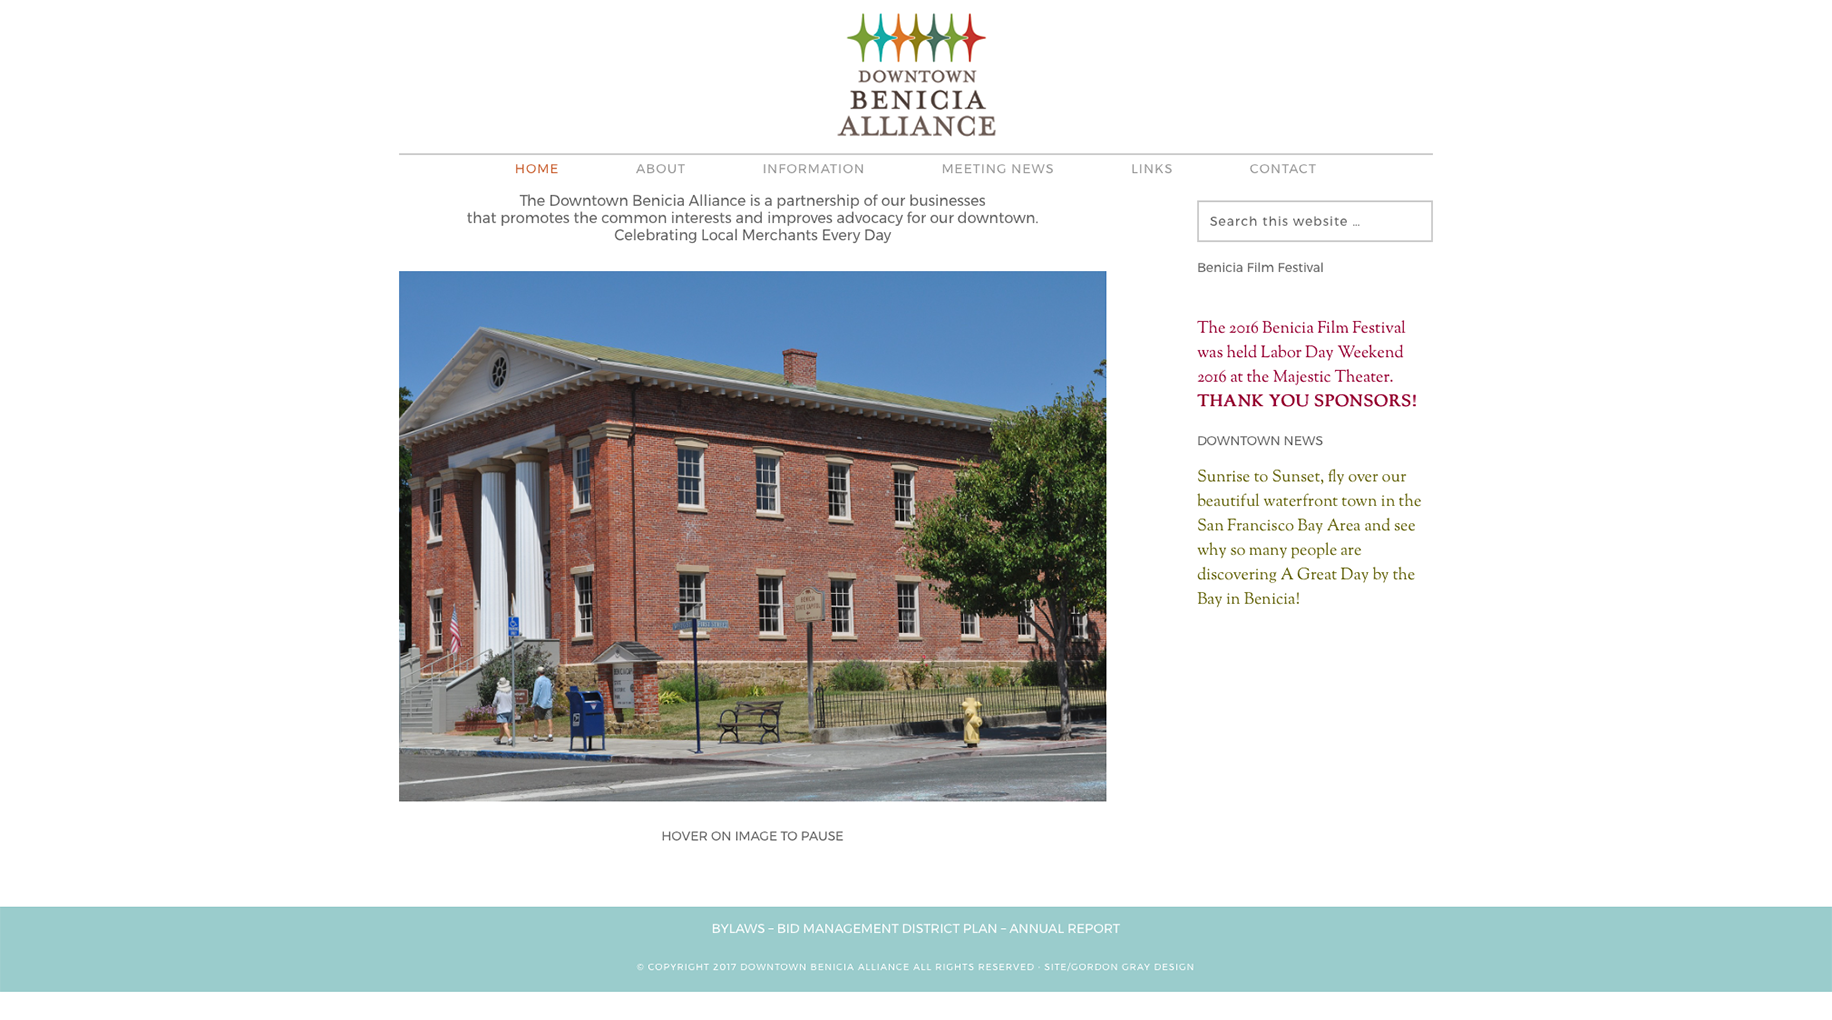 Downtown Benicia Alliance Website